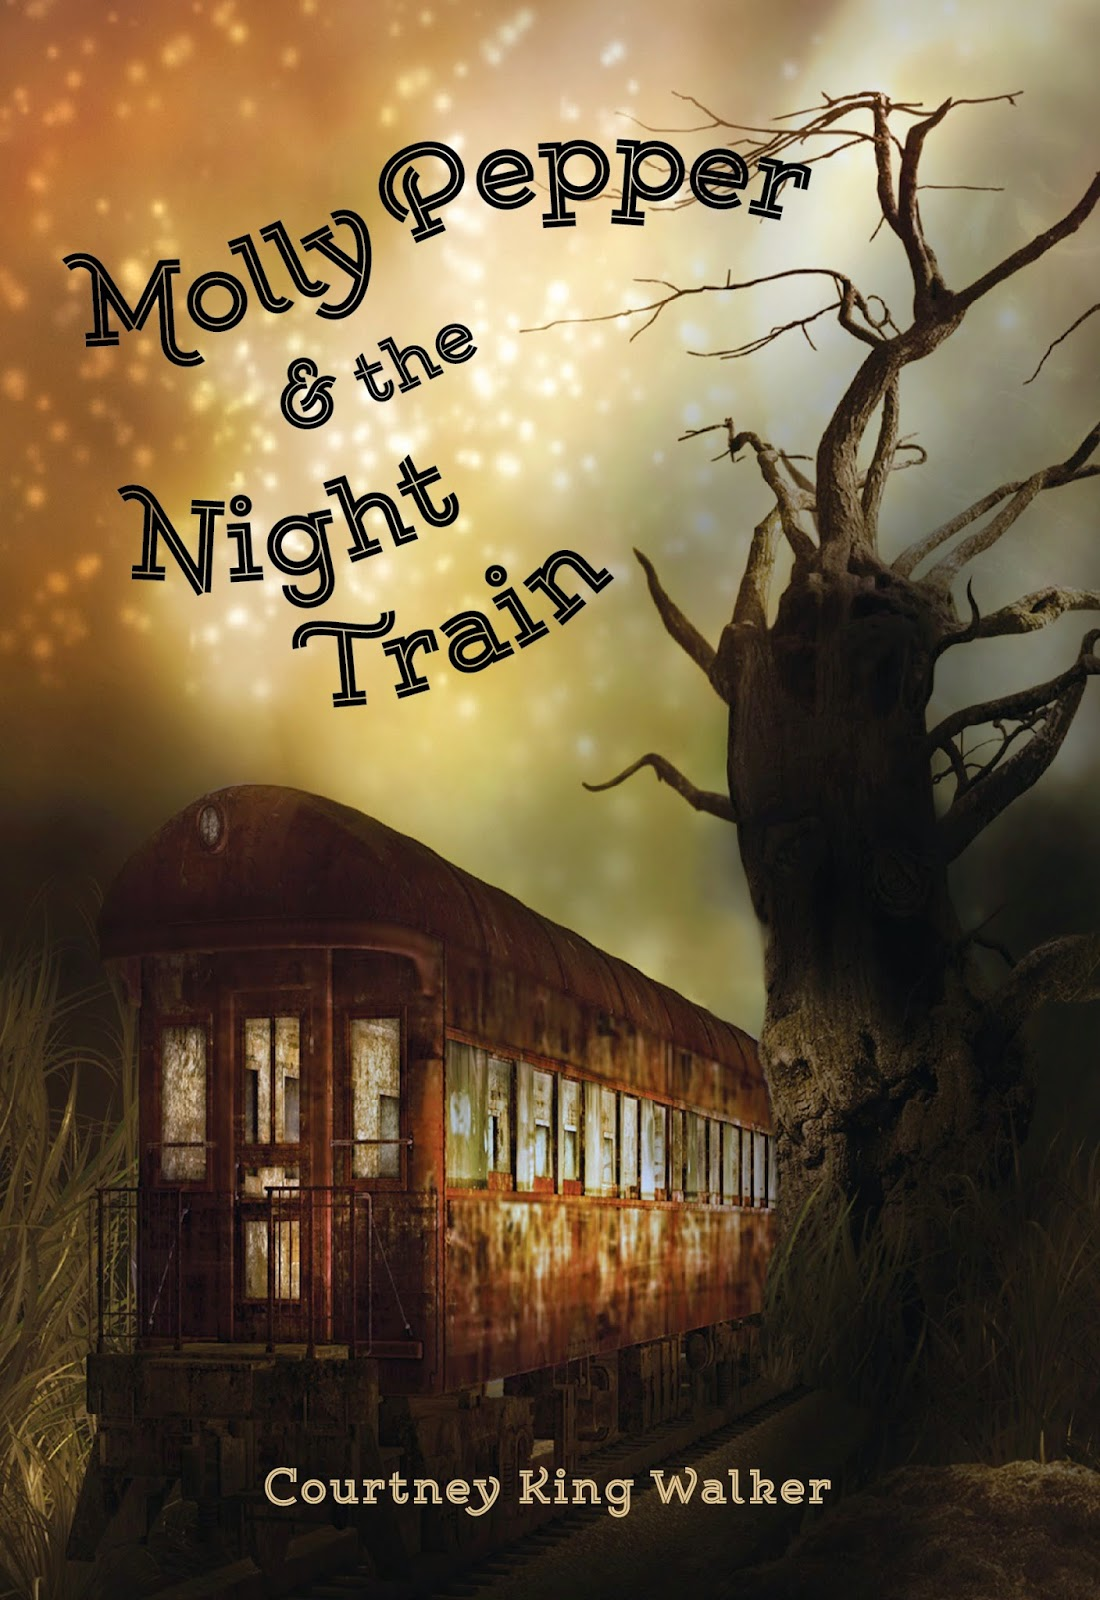 https://www.goodreads.com/book/show/23008023-molly-pepper-and-the-night-train